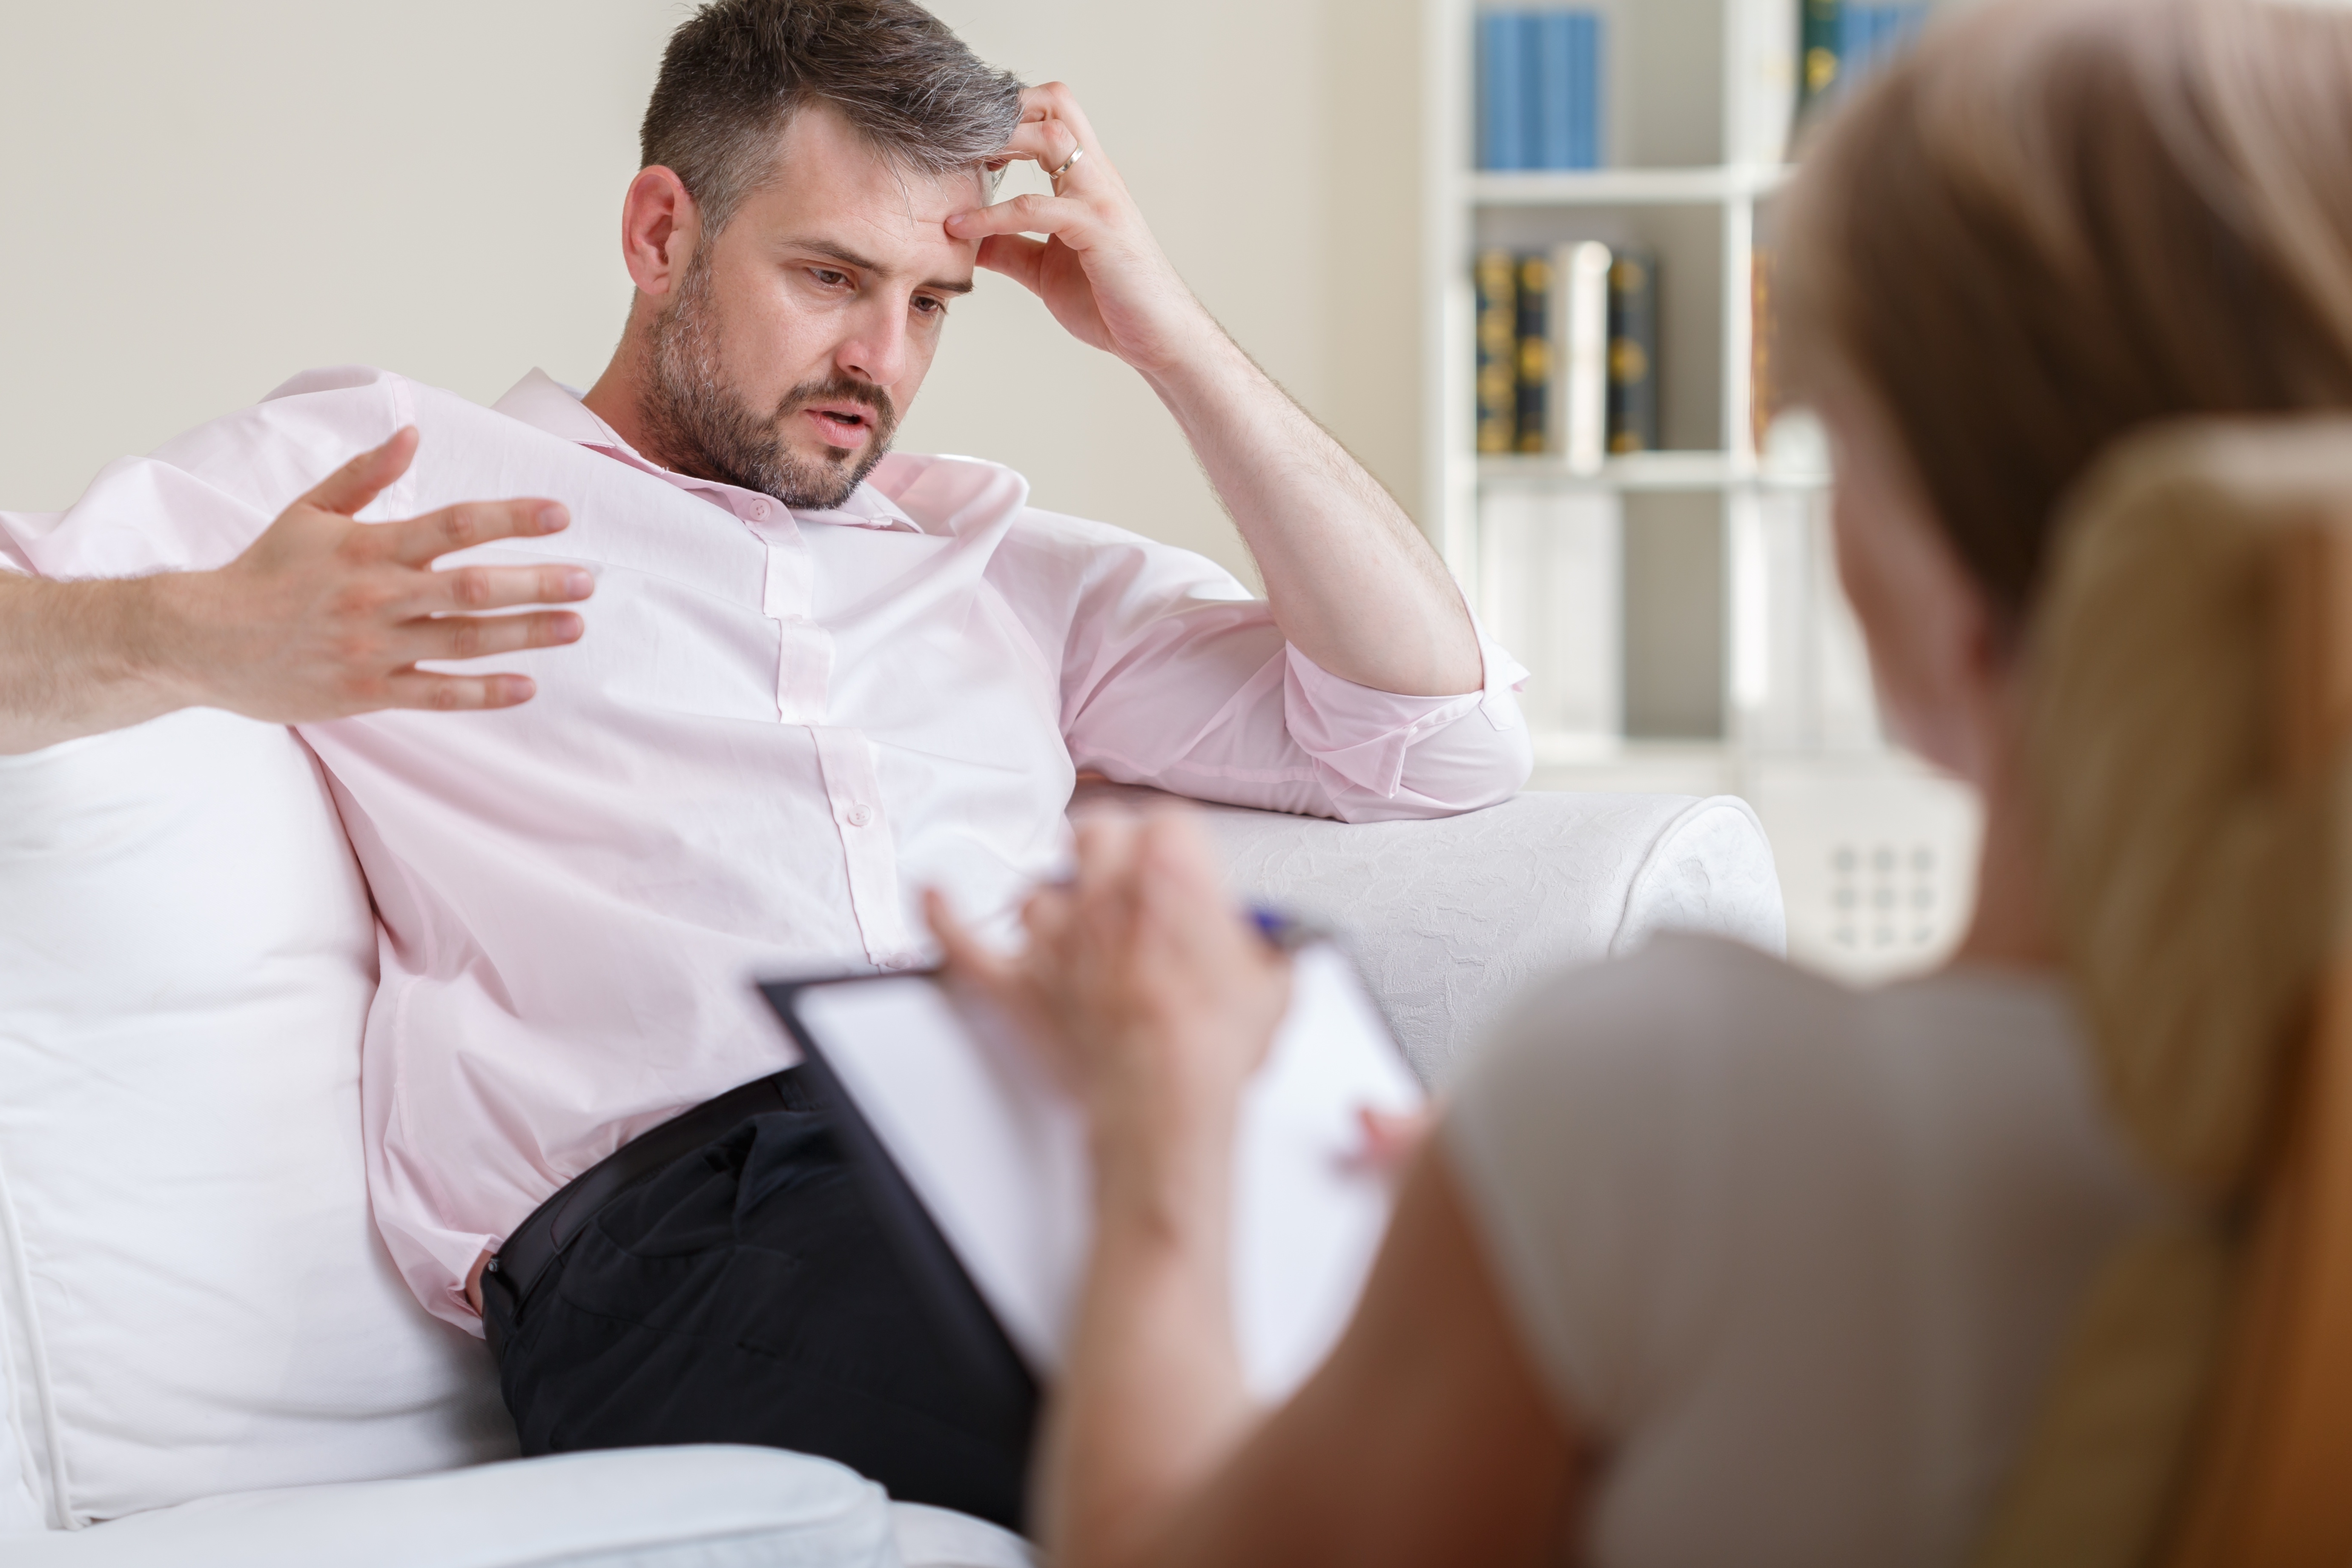 What Happens When You Mention Suicide in Therapy